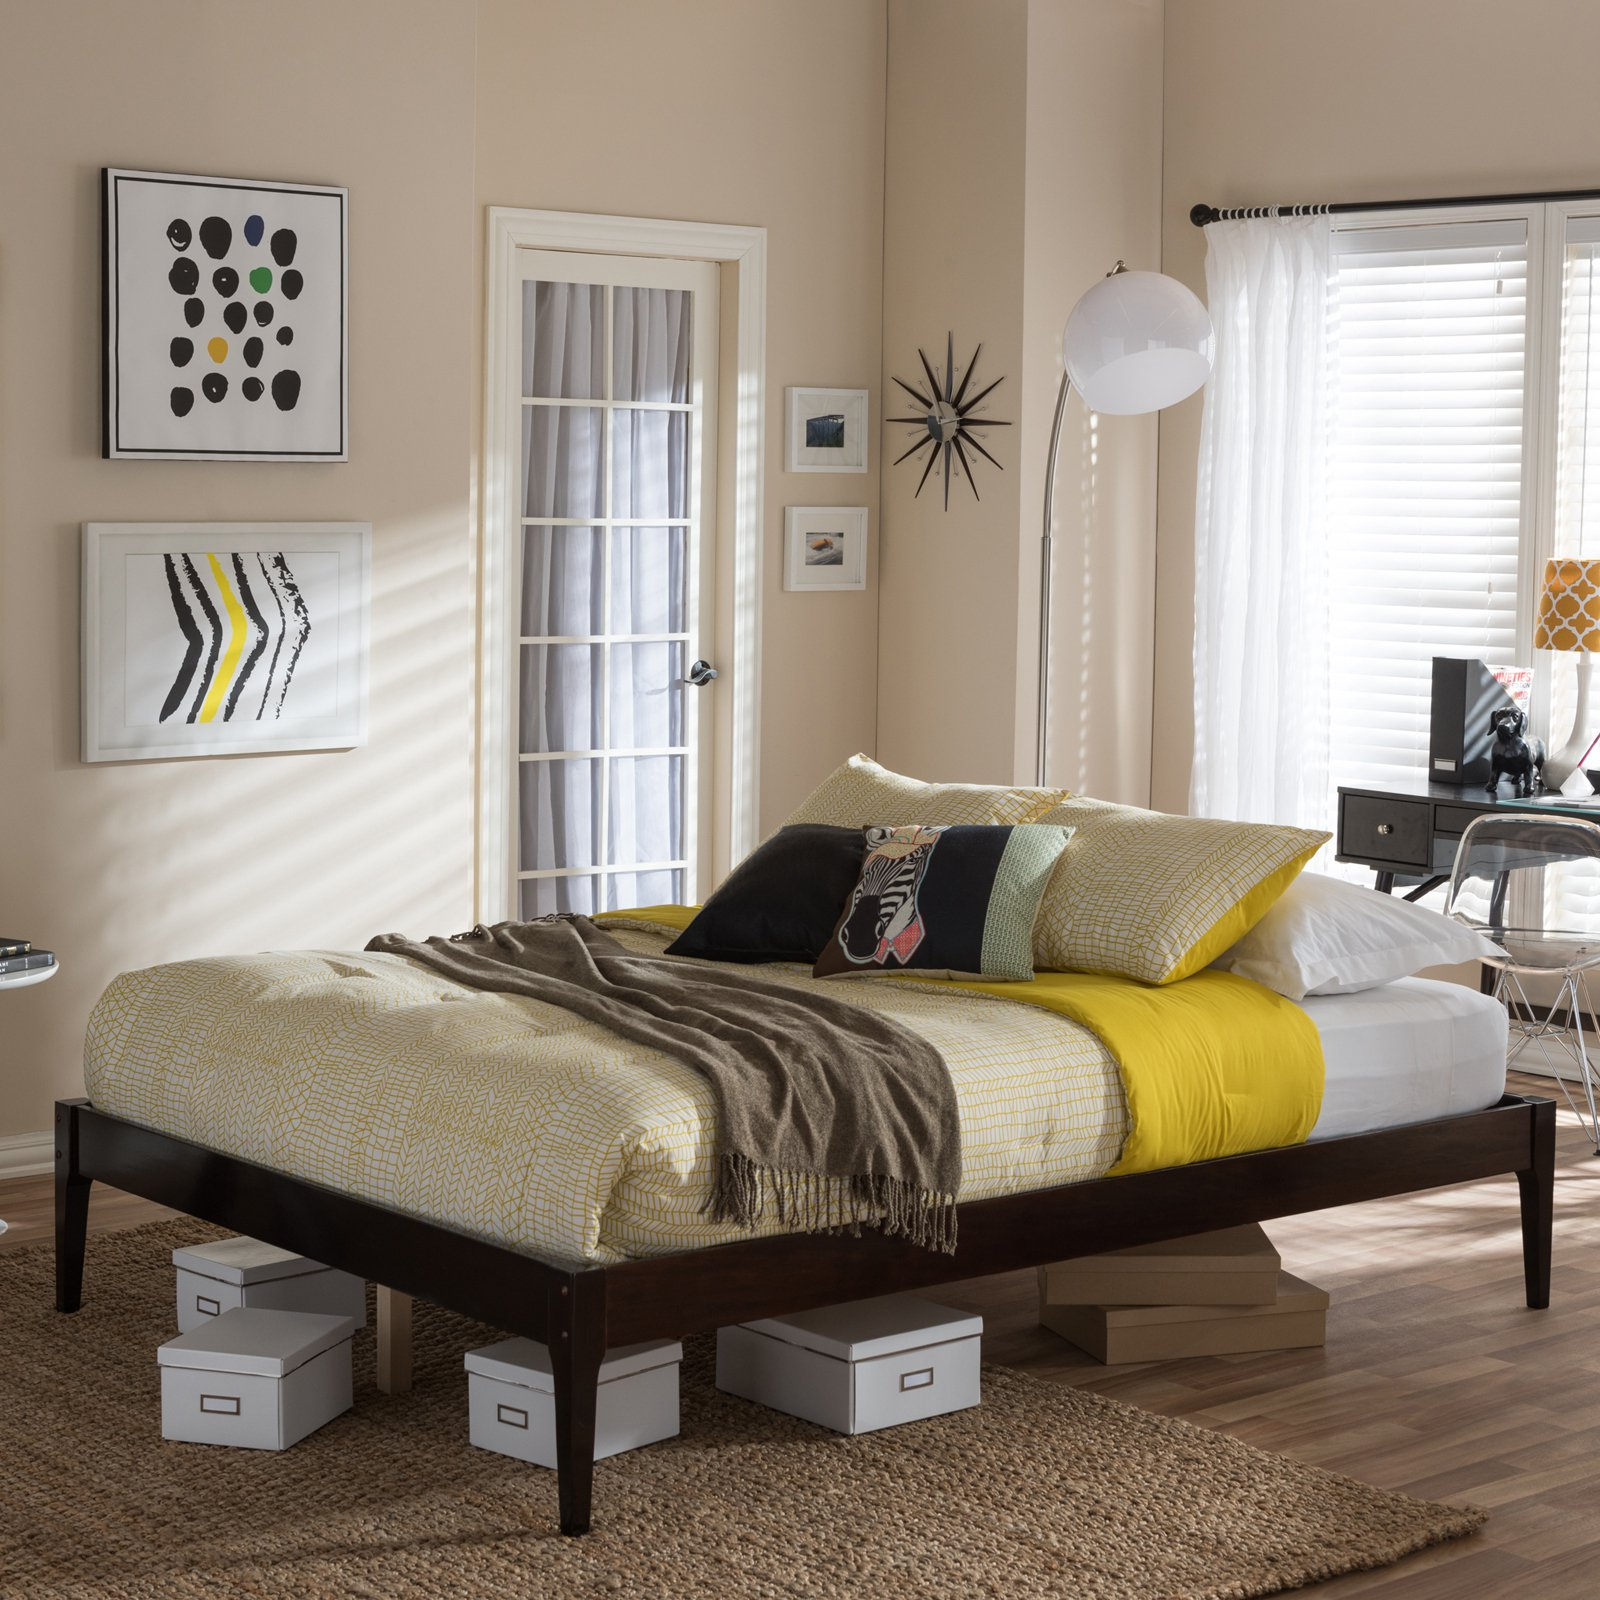 Baxton Studio Bentley Mid-Century Modern Solid Wood Bed Frame, Multiple Finishes, Multiple Sizes